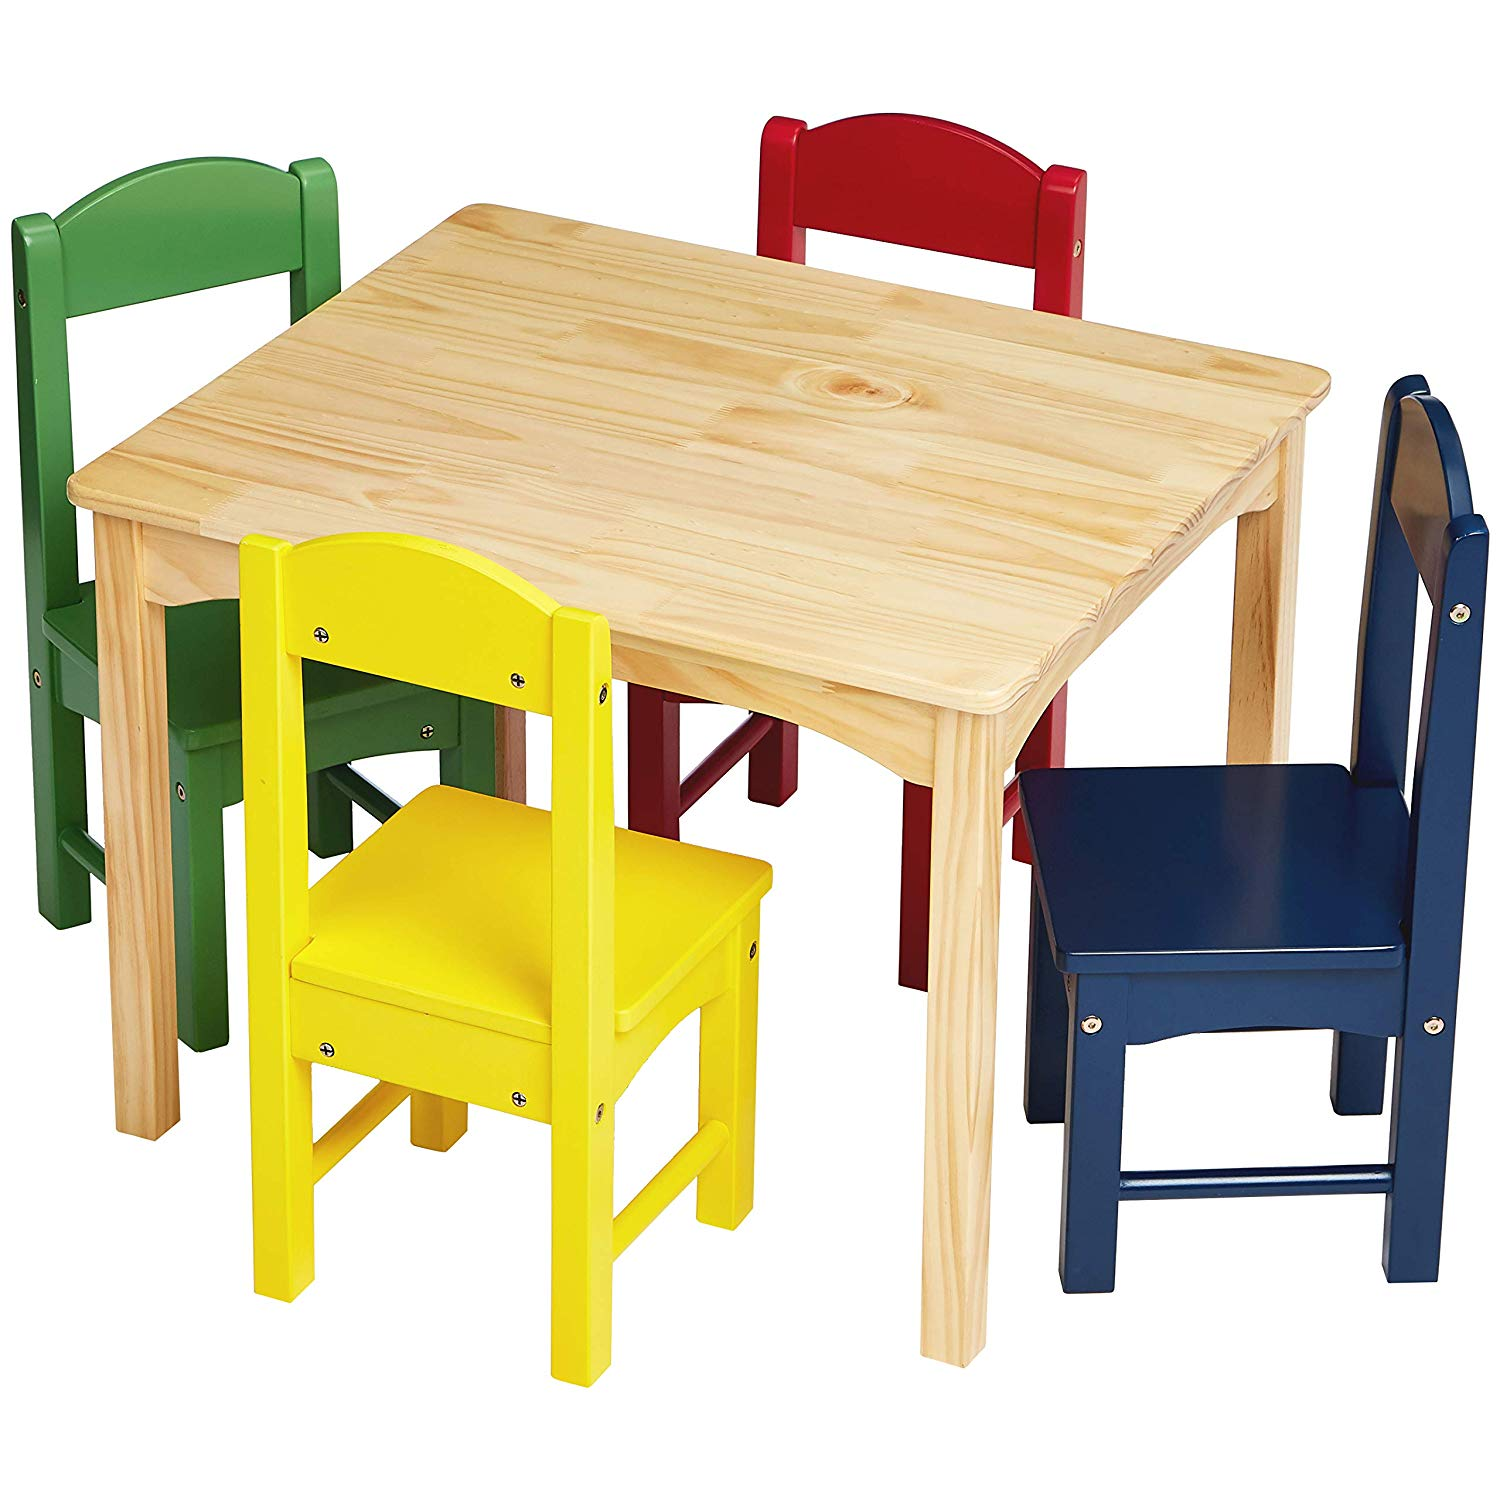 Amazing The Best Kids Tables Chairs You Can Buy On Amazon Sheknows Machost Co Dining Chair Design Ideas Machostcouk